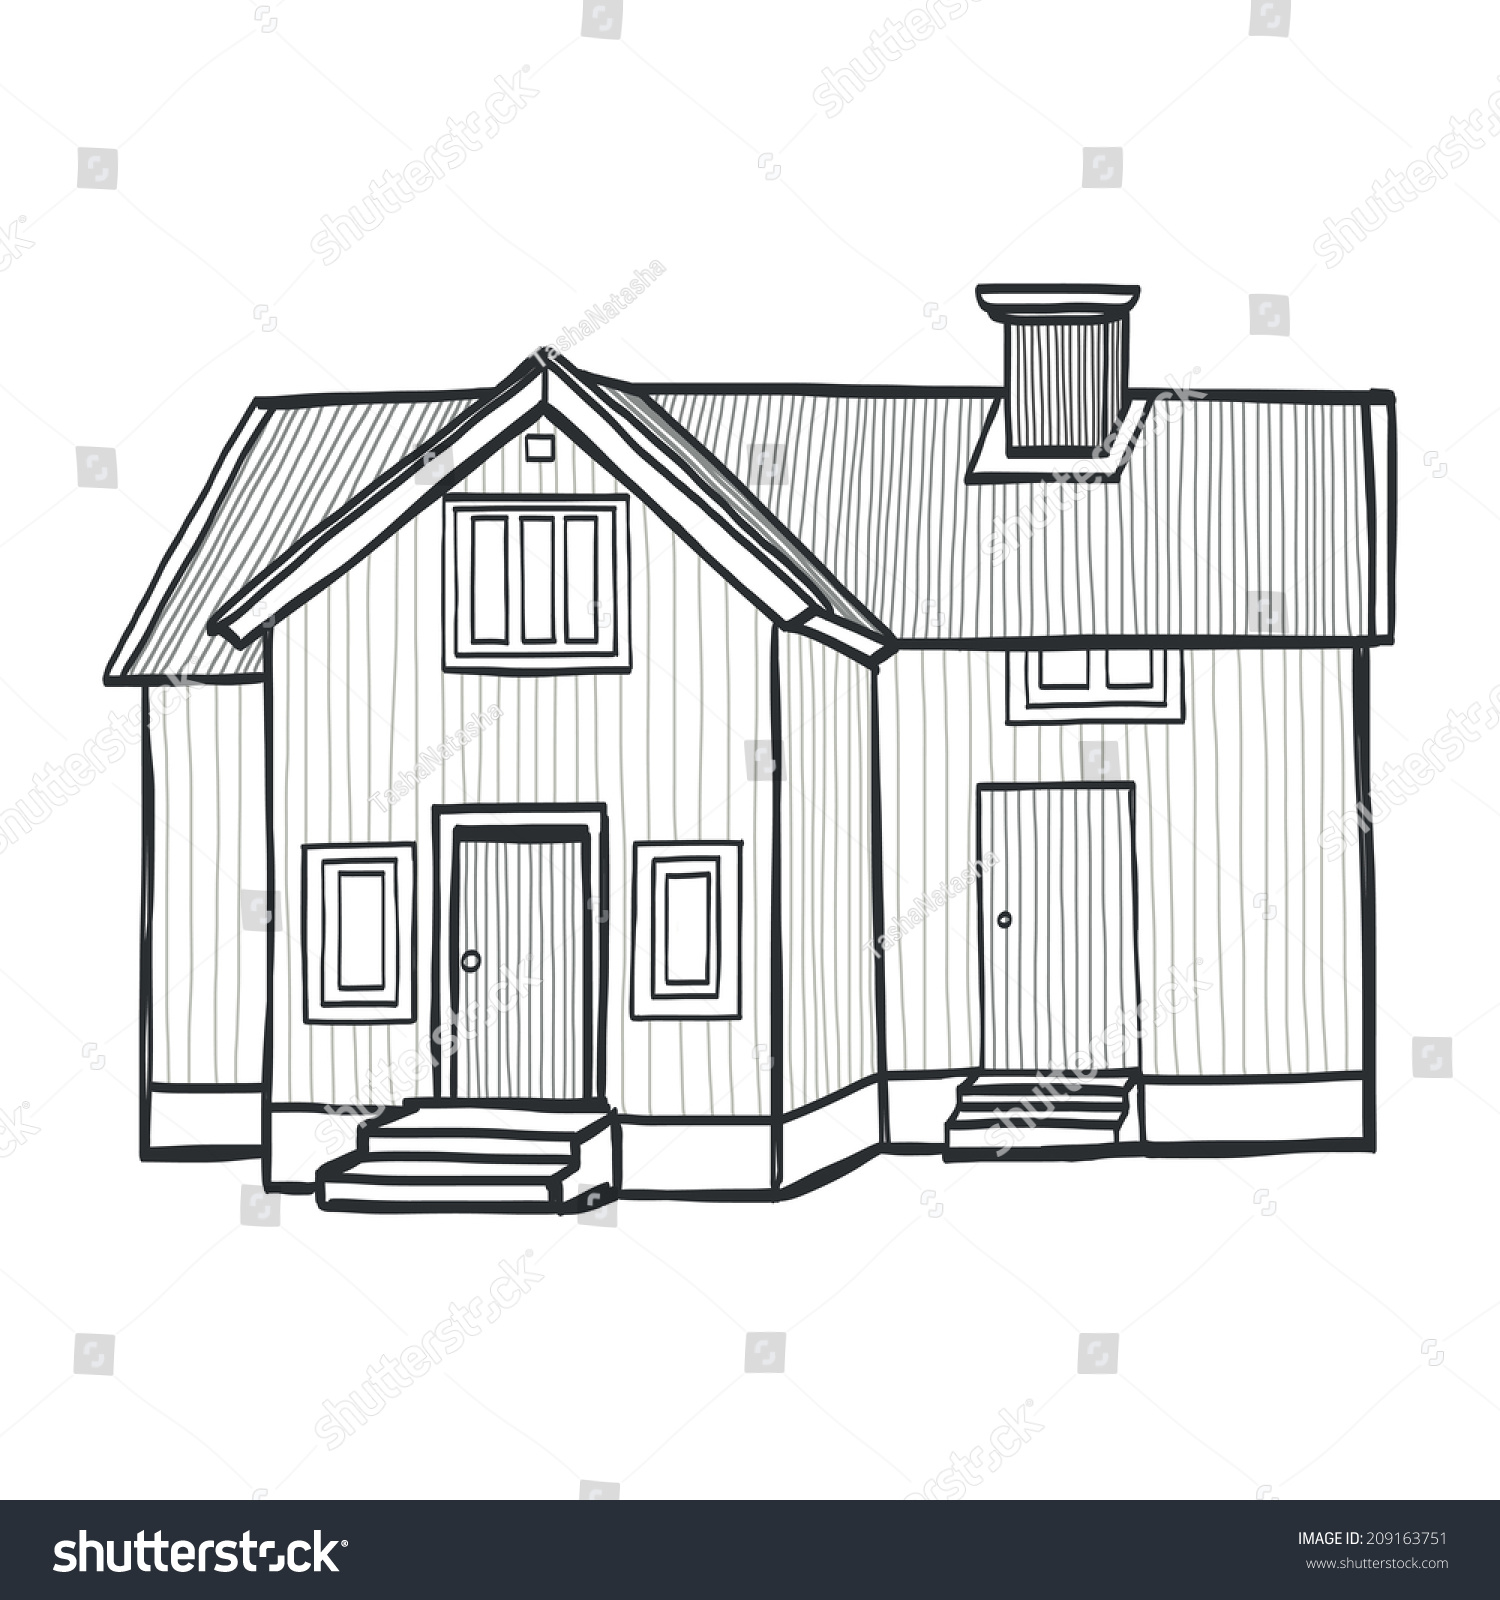 Hand drawn sketchy scandinavian house freehand stock for House sketches from photos